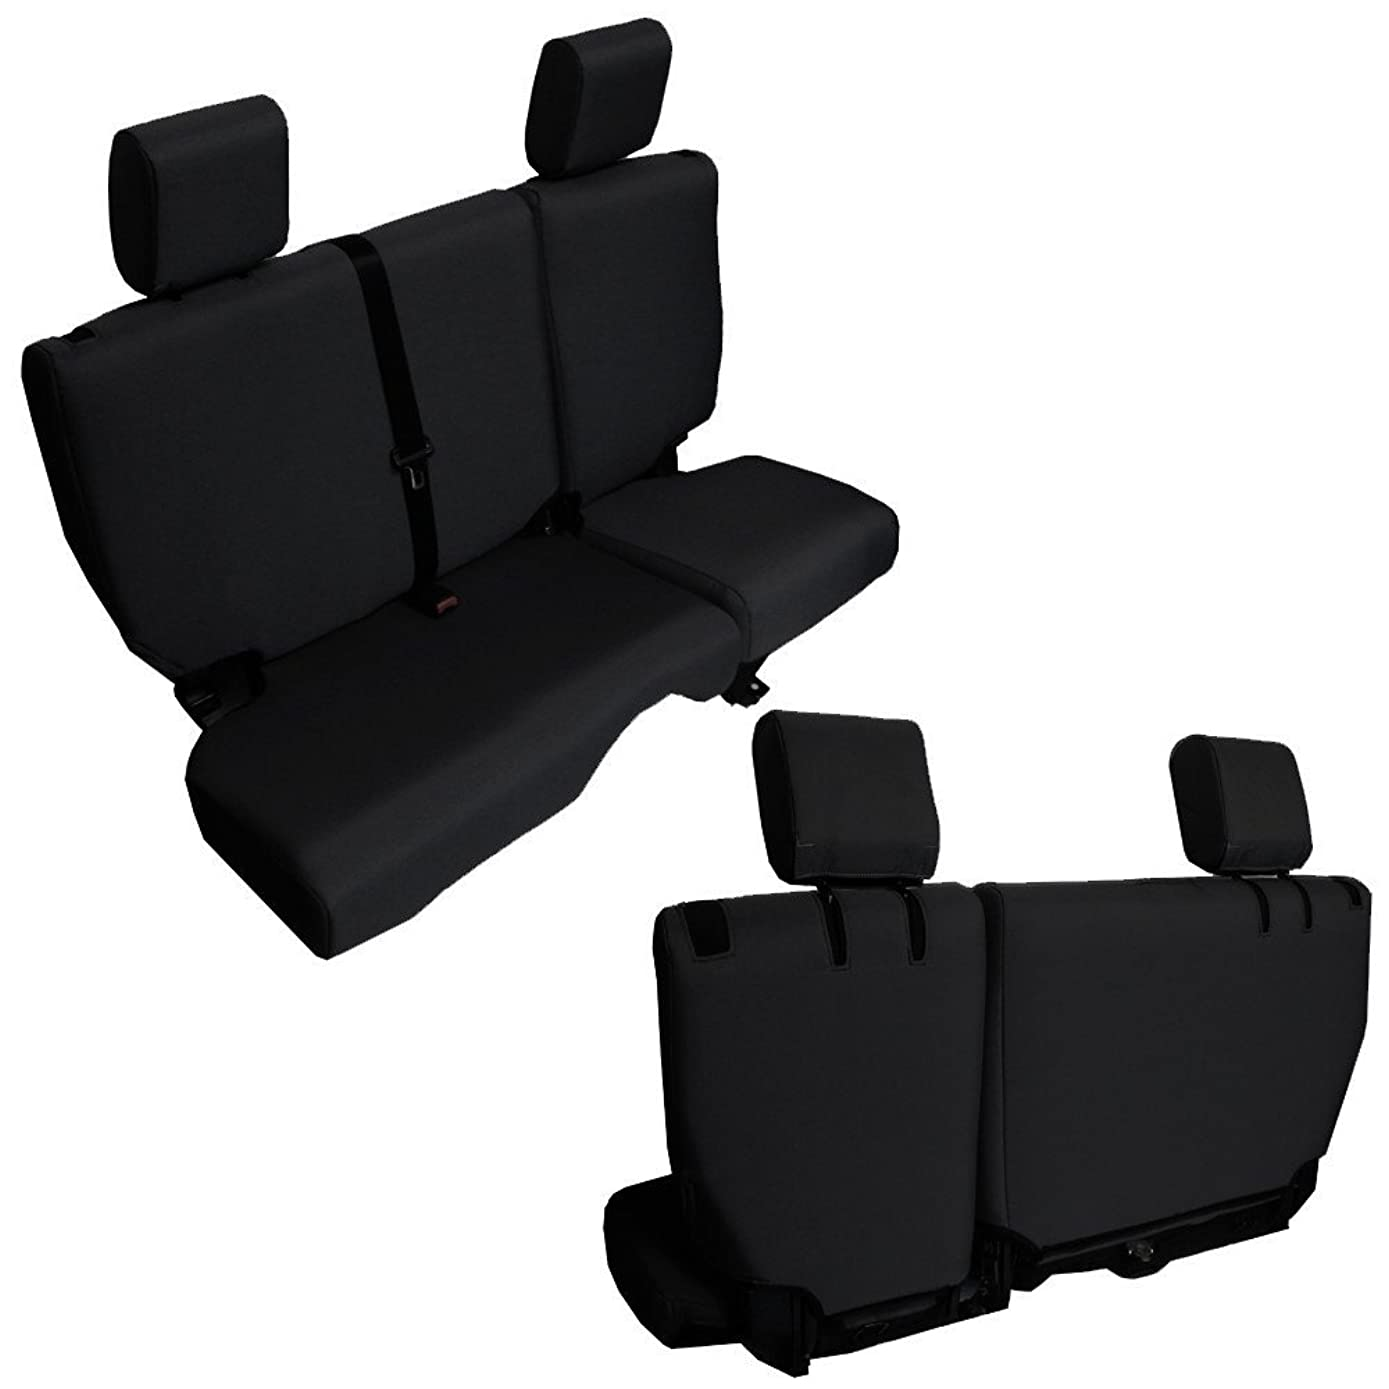 Bartact JKBC2013R4B - 2013-18 Baseline Performance Rear 4 Door Bench Seat Covers Jeep Wrangler JKU (Black)